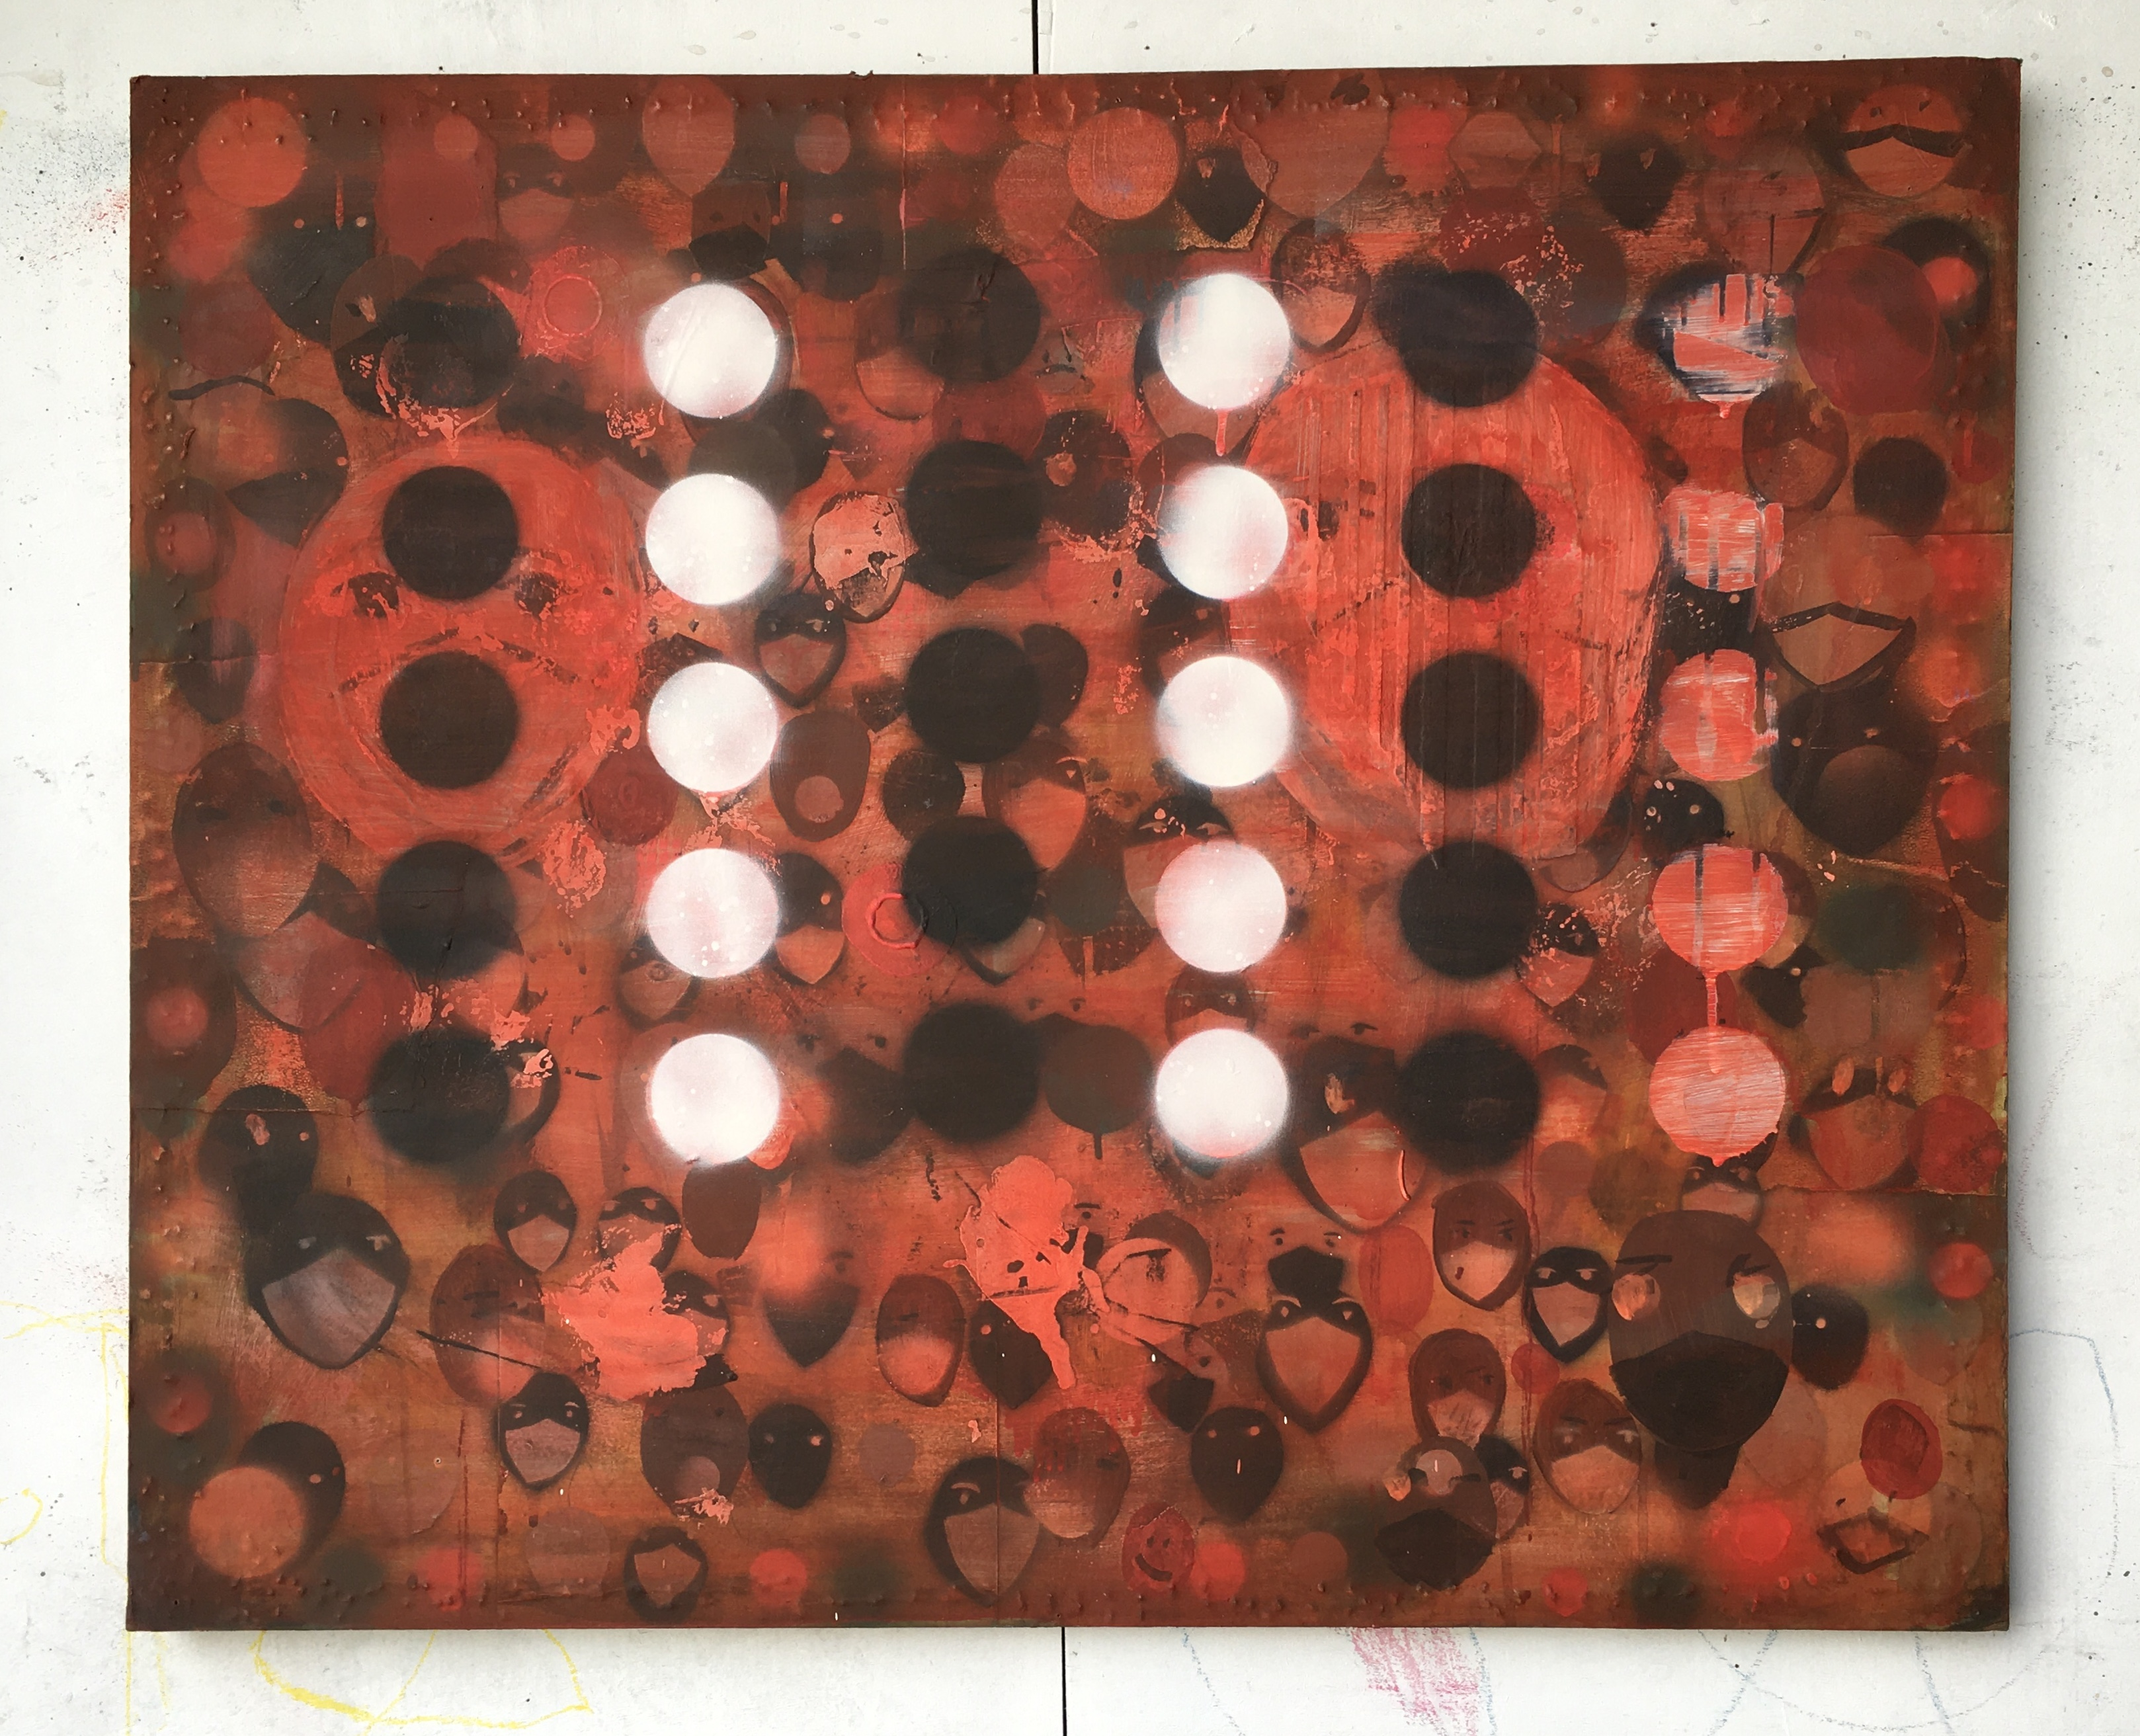 Untitled (Red masks) 2020 _ oil and spra